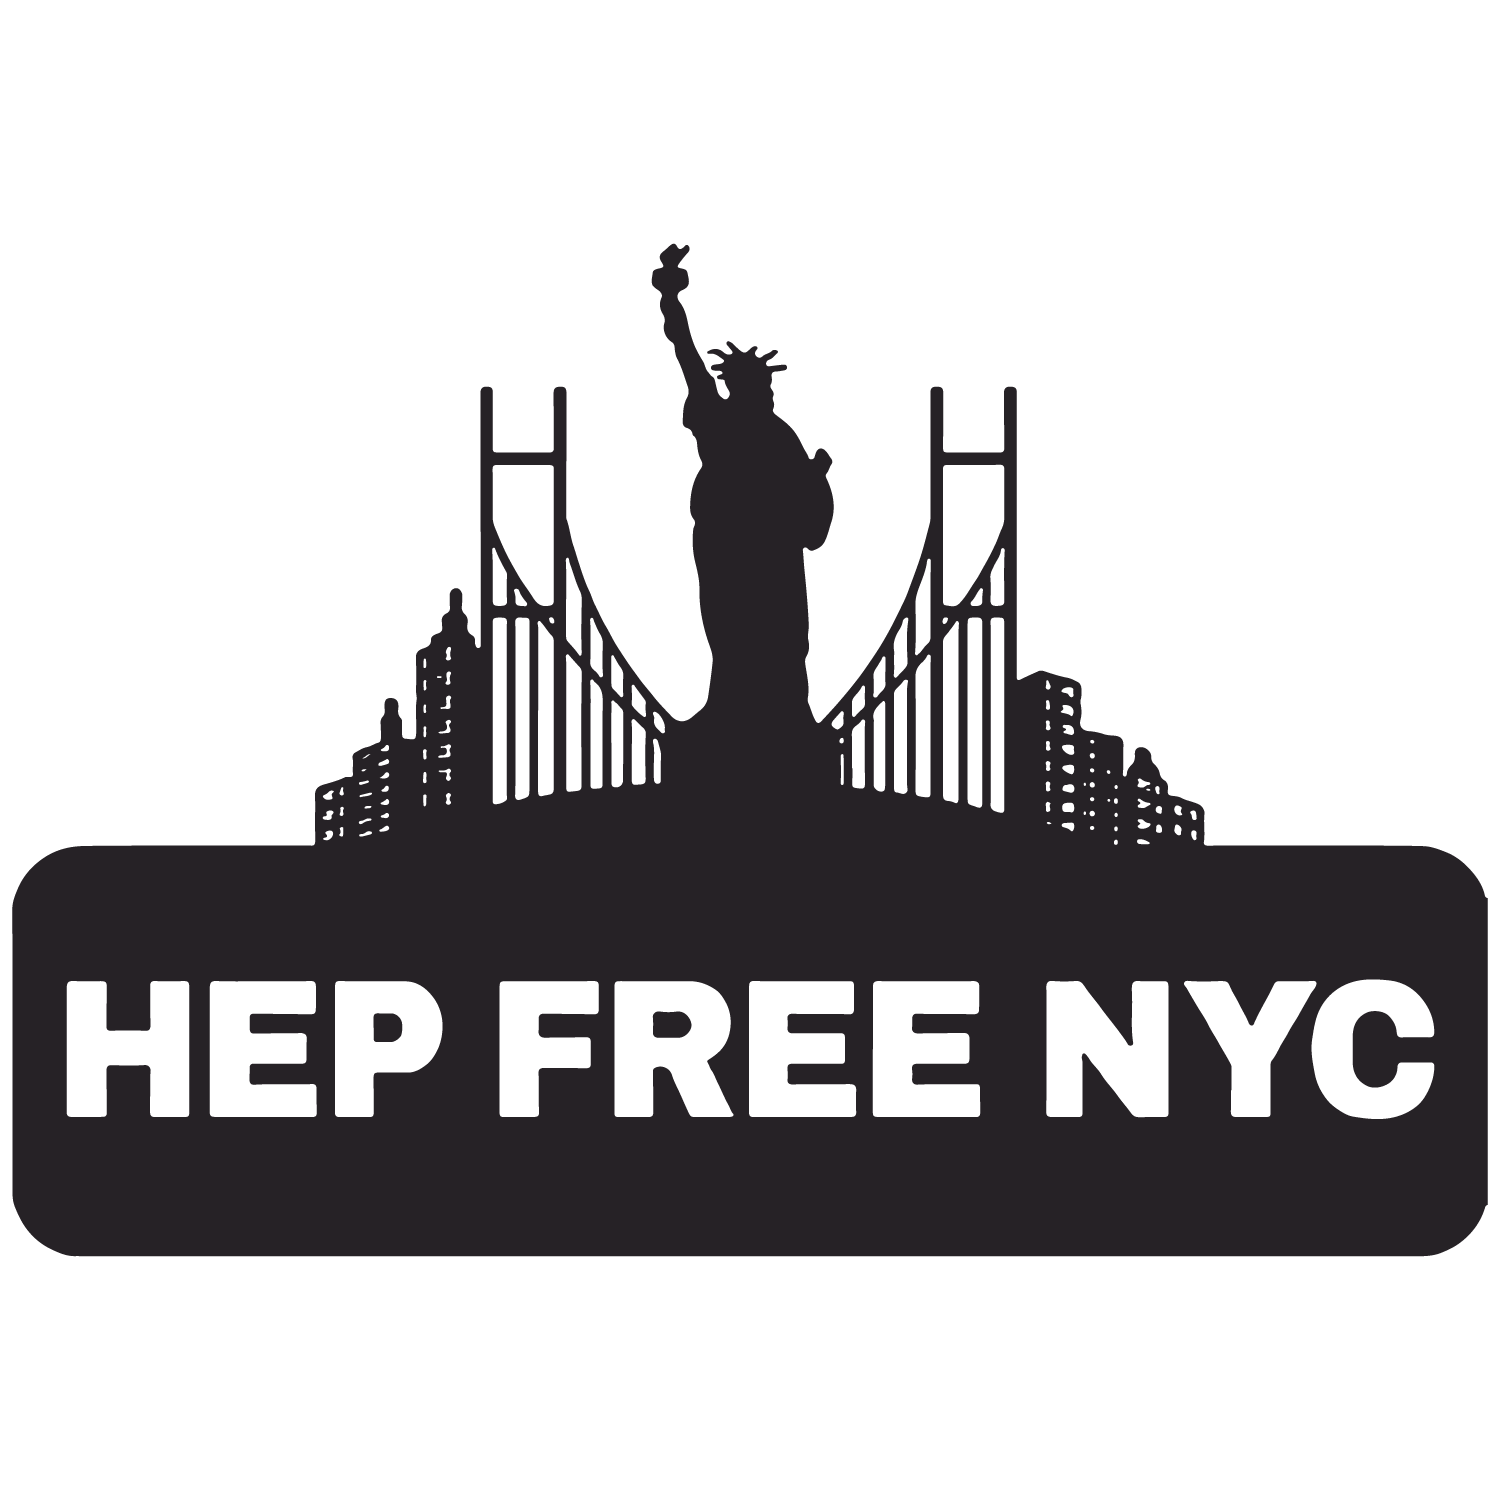 Hep free NYC Content Creation marketing Newsletter Social Media New York City Brooklyn Manhattan